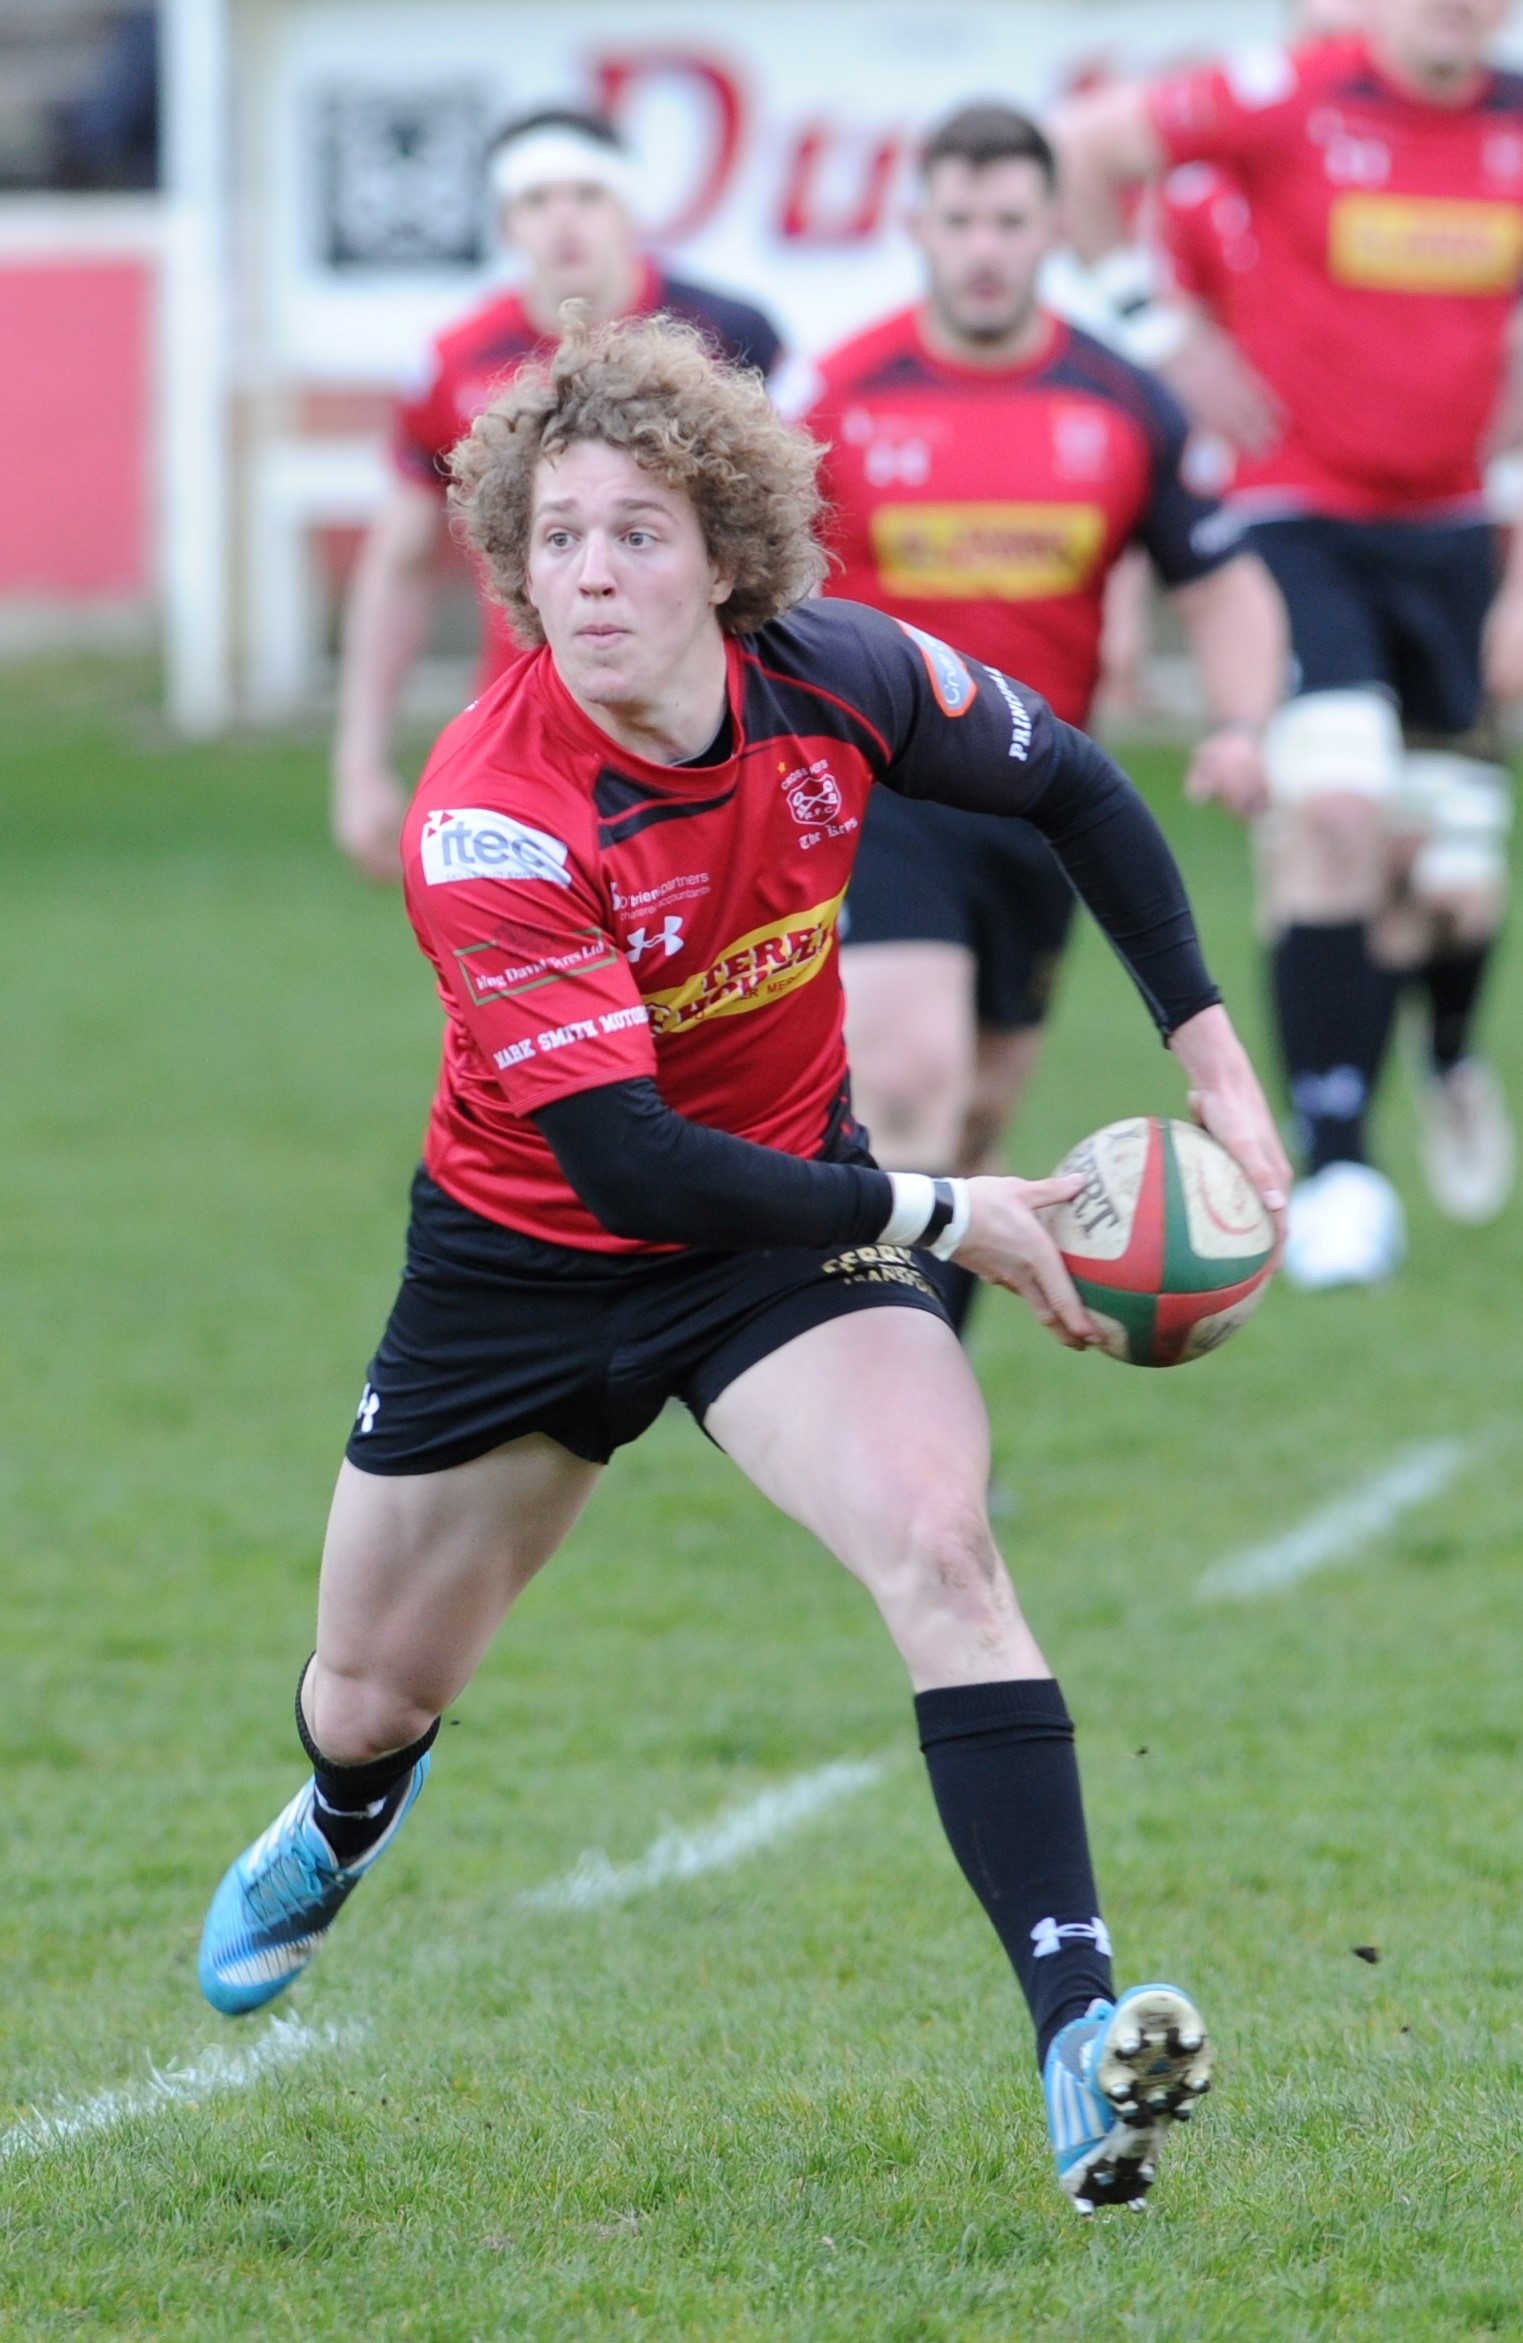 DRAGONS CALL: Angus O'Brien, in action for Cross Keys last season